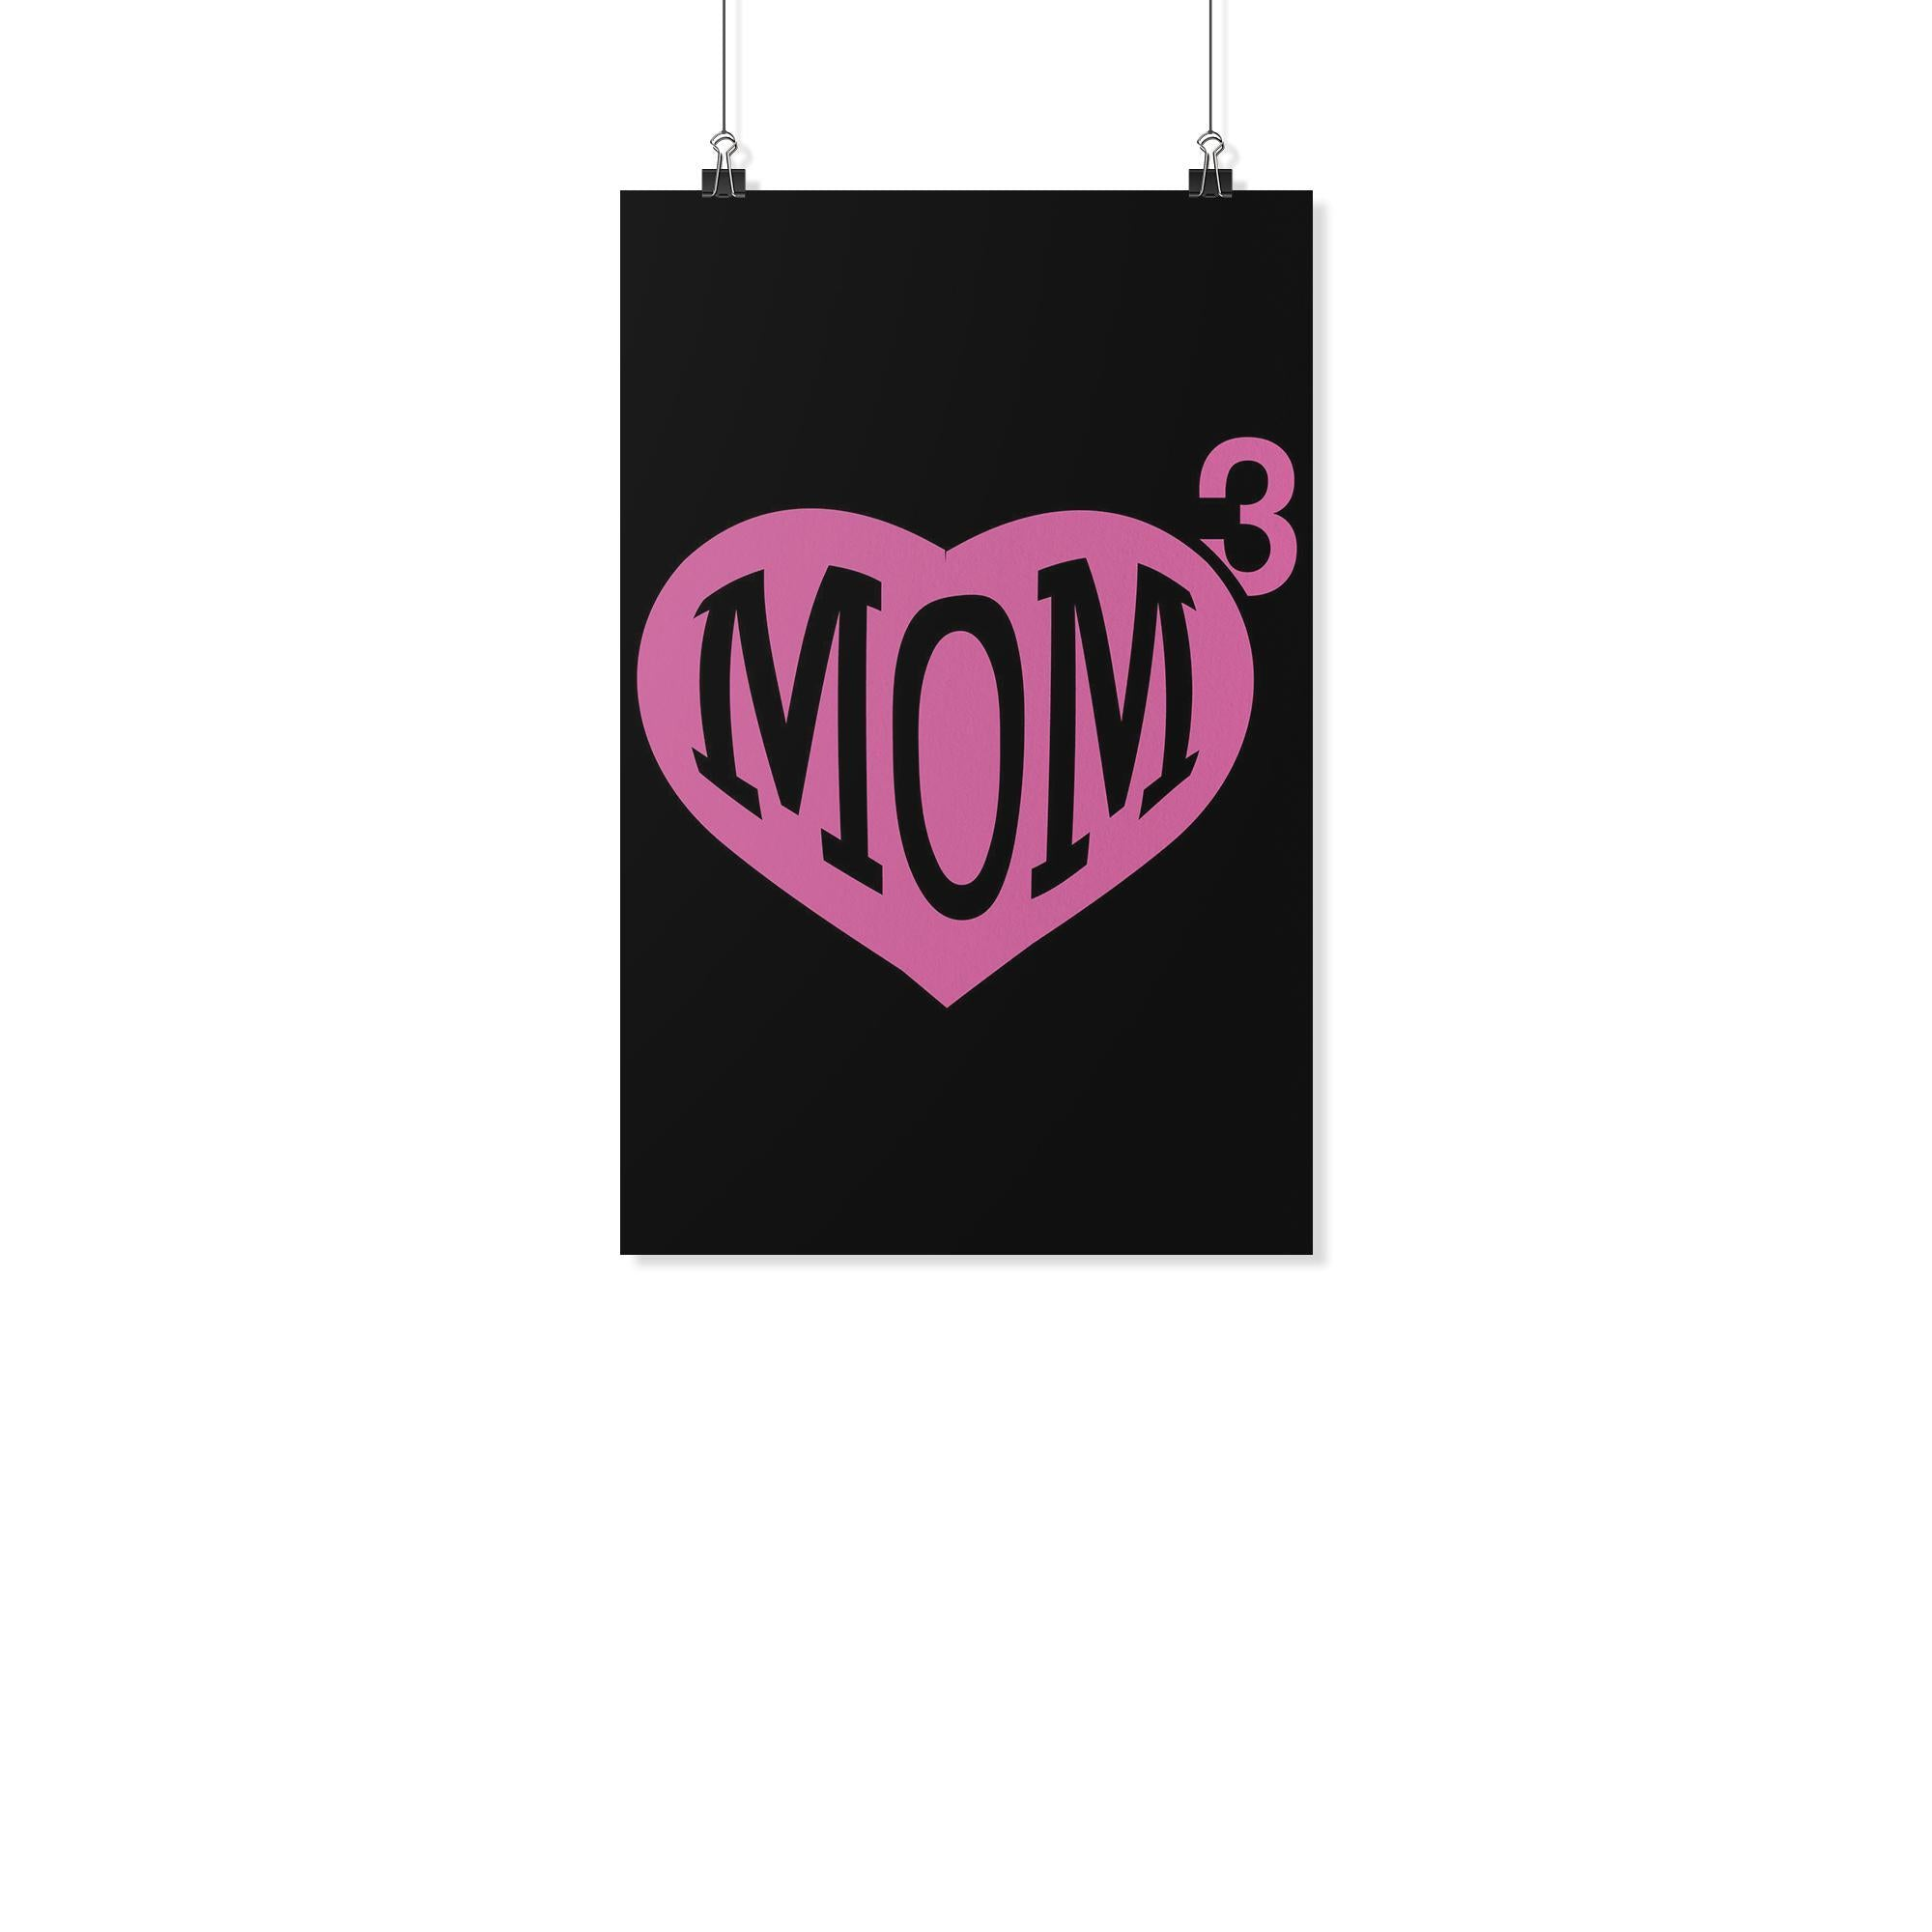 Mom 3 Kid Cube Triple Funny Cute Mother Day Poster Wall Art Room Decor Gift Idea-Posters 2-11x17-JoyHip.Com